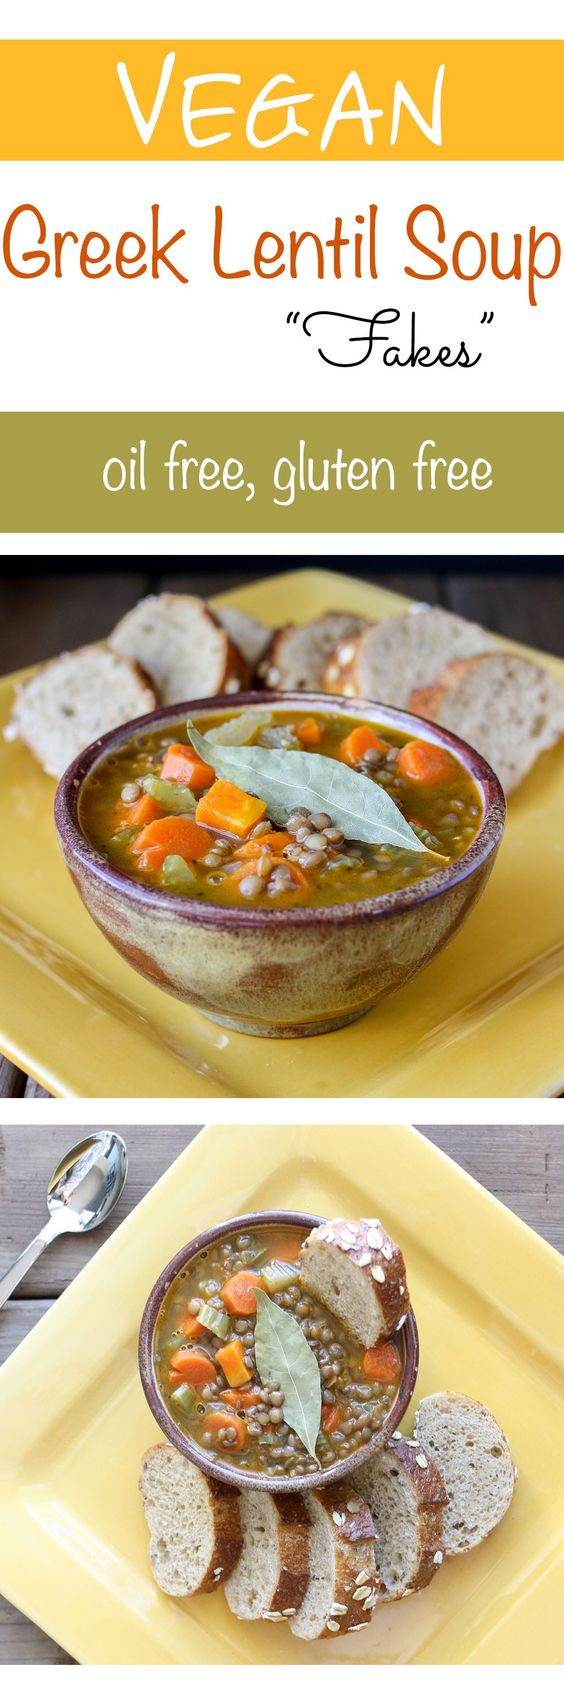 A few weeks back I casually posted a picture of the lentil soup my mom brings over for us from time to time. I got an overwhelming request for the recipe so I decided it's about time I post another...